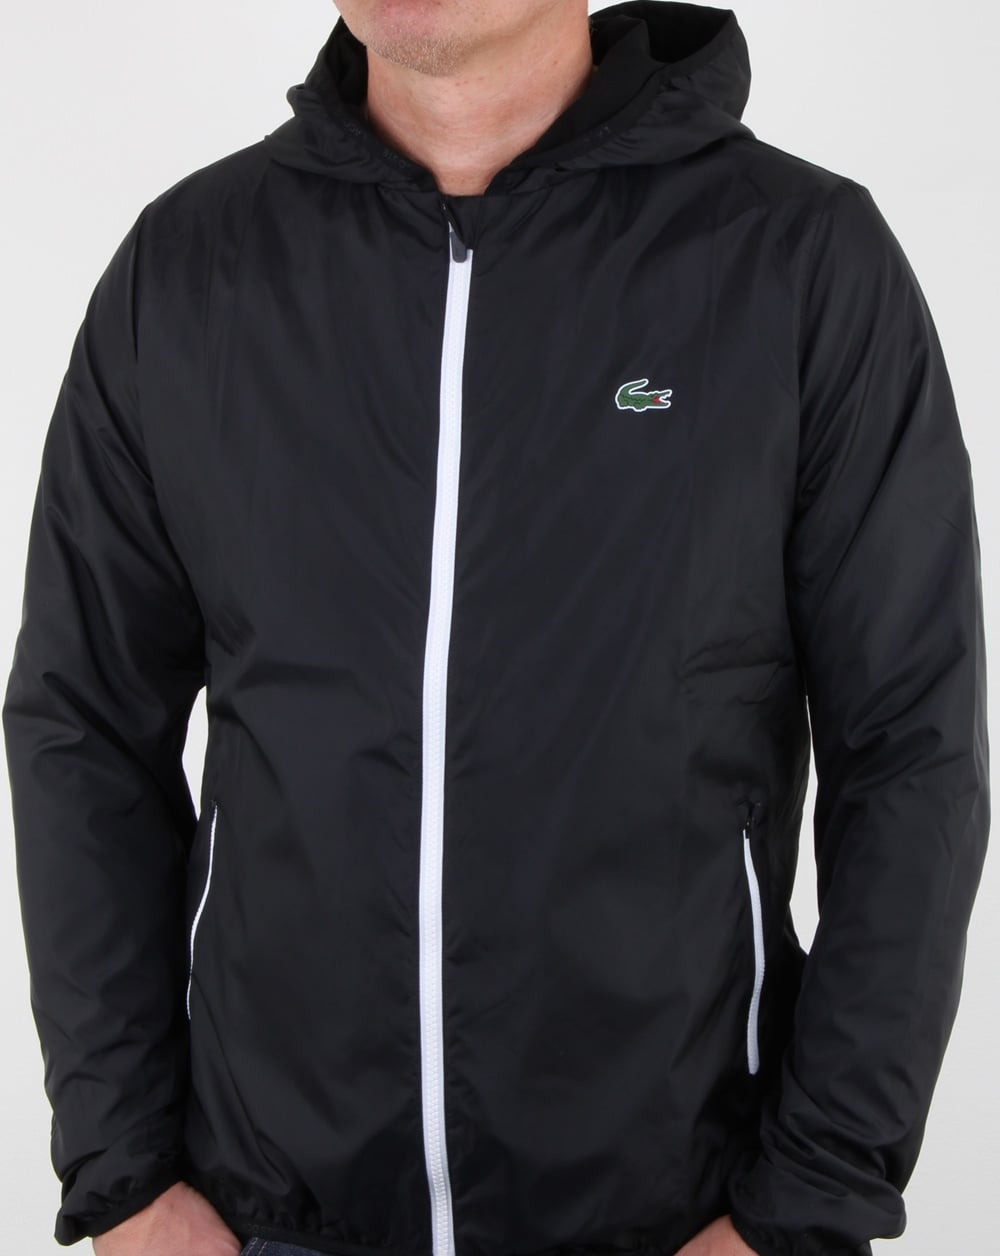 cfbdc1a2c Lacoste Hooded Jacket Black/white